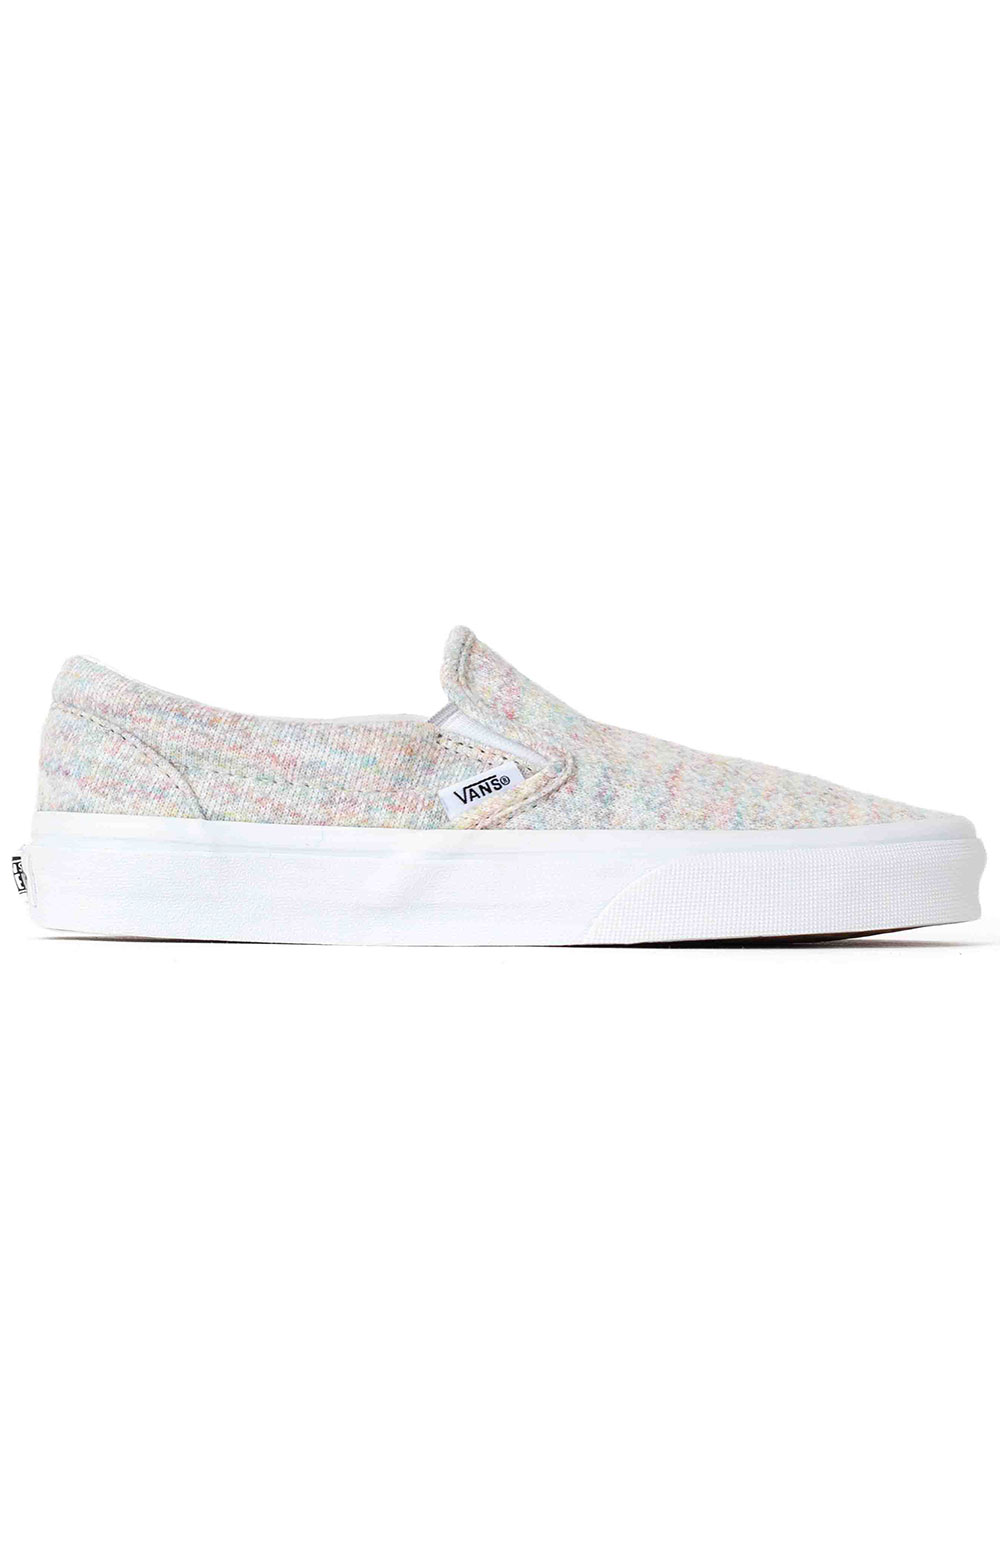 (U38WN%) Rainbow Jersey Classic Slip-On Shoe - Bit Of Blue